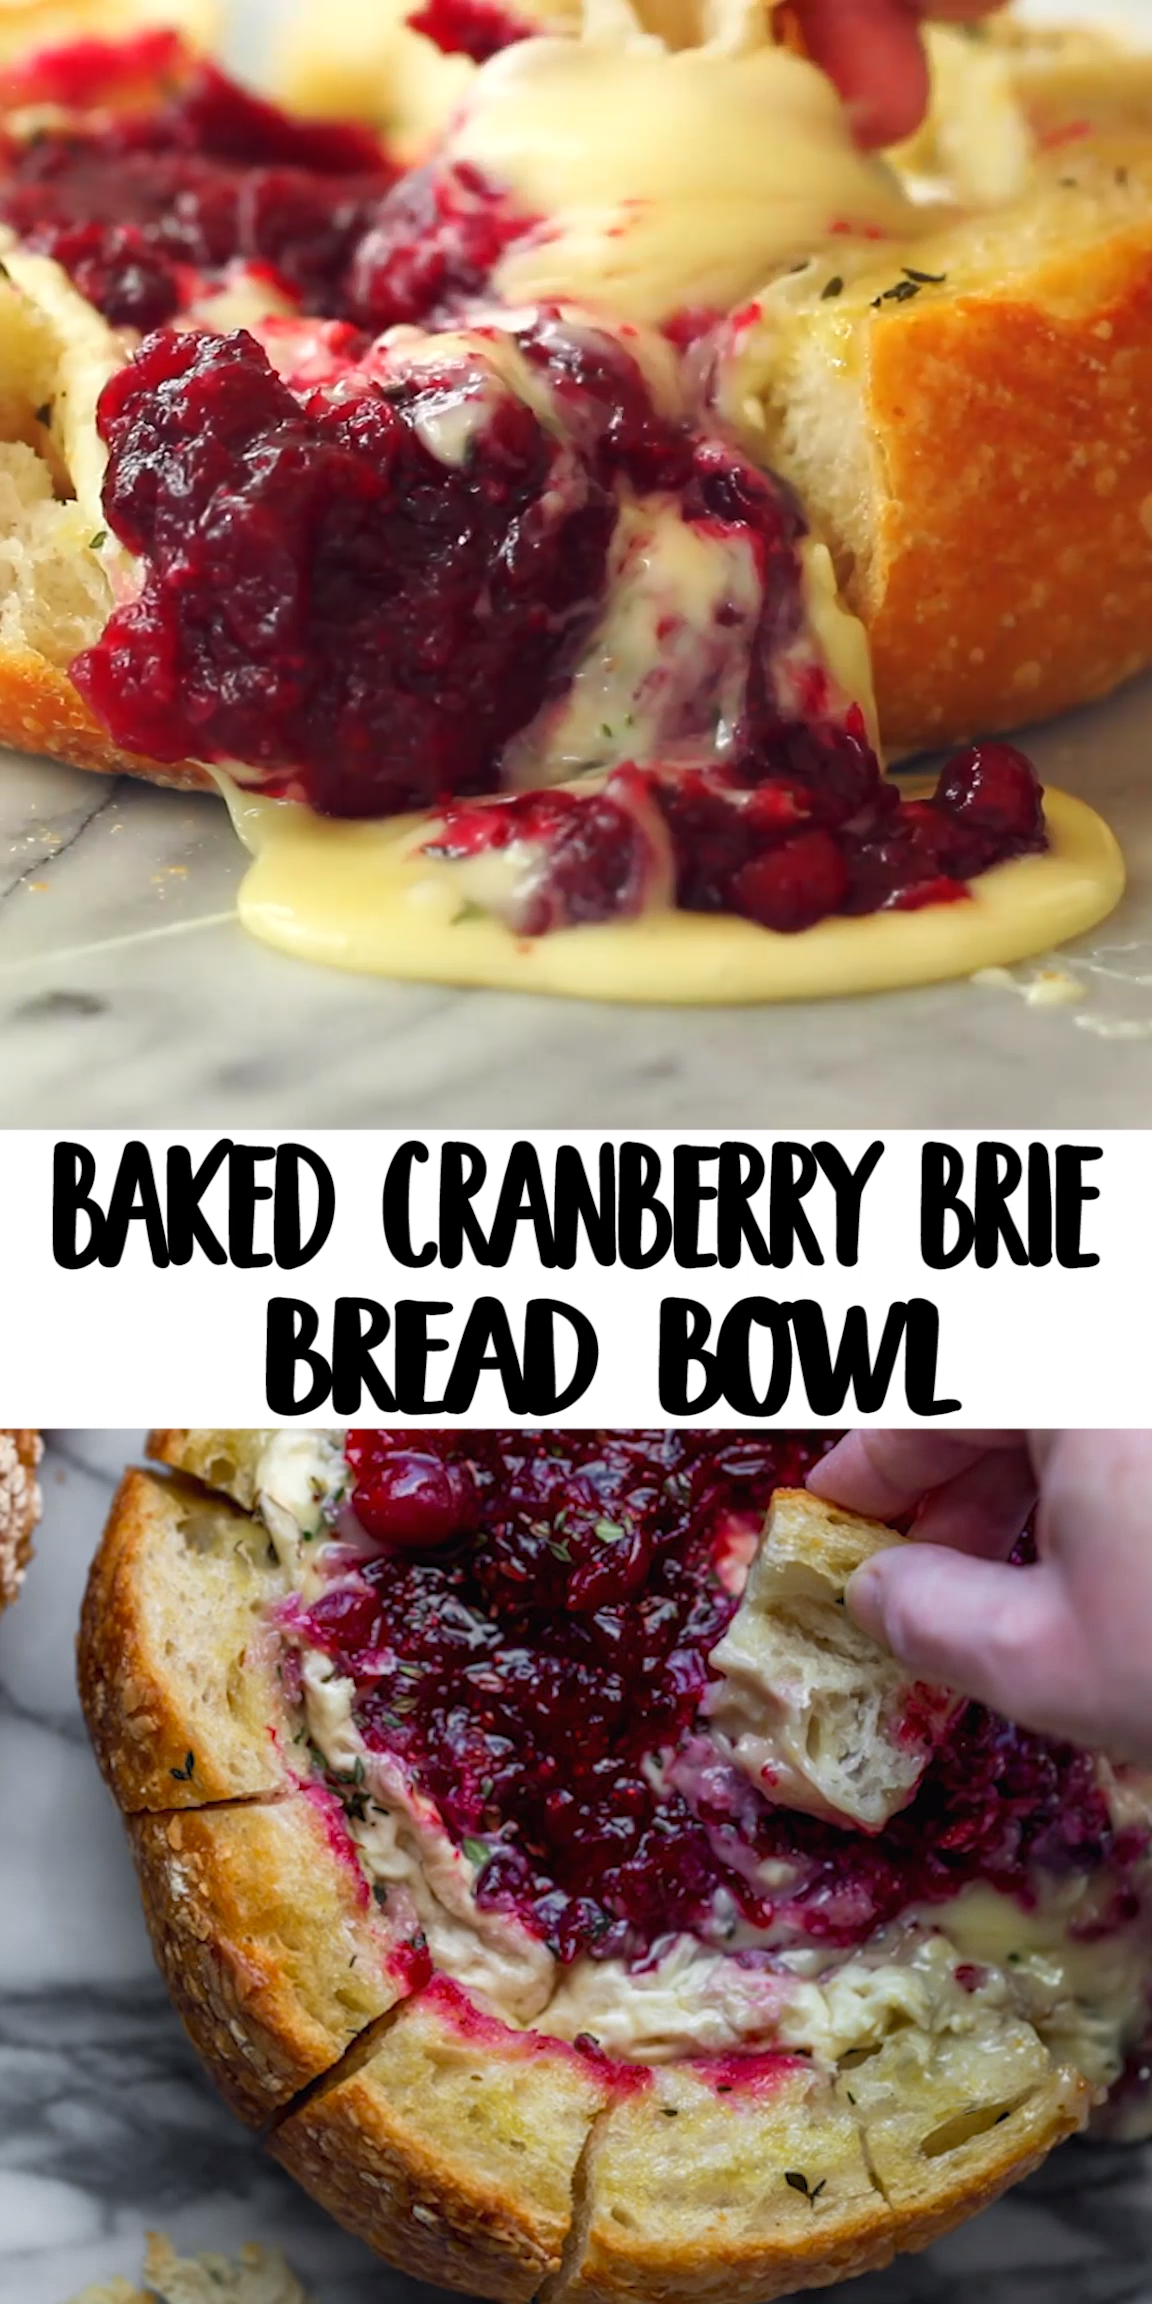 This tear apart Baked Cranberry Brie Bread Bowl is a beautiful holiday party appetizer. Melty brie and sweet tart cranberry sauce are a match made in heaven!